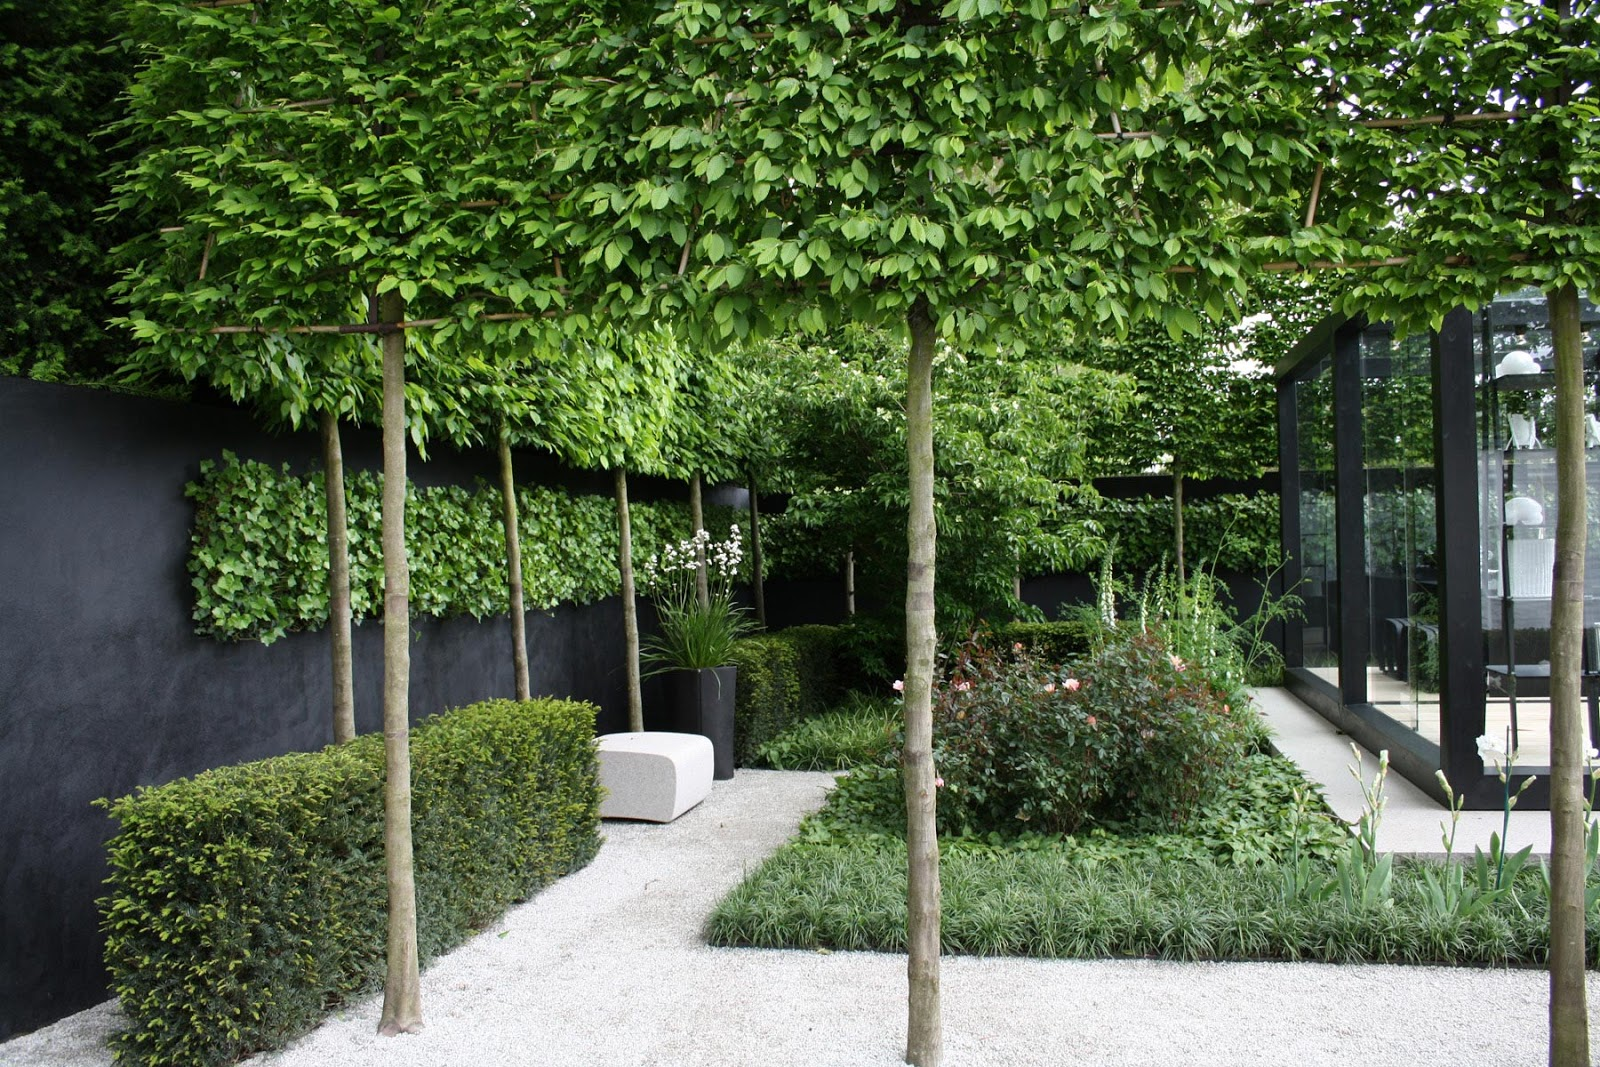 David Dangerous: Pleached trees - Stilted Trees - Raised ...